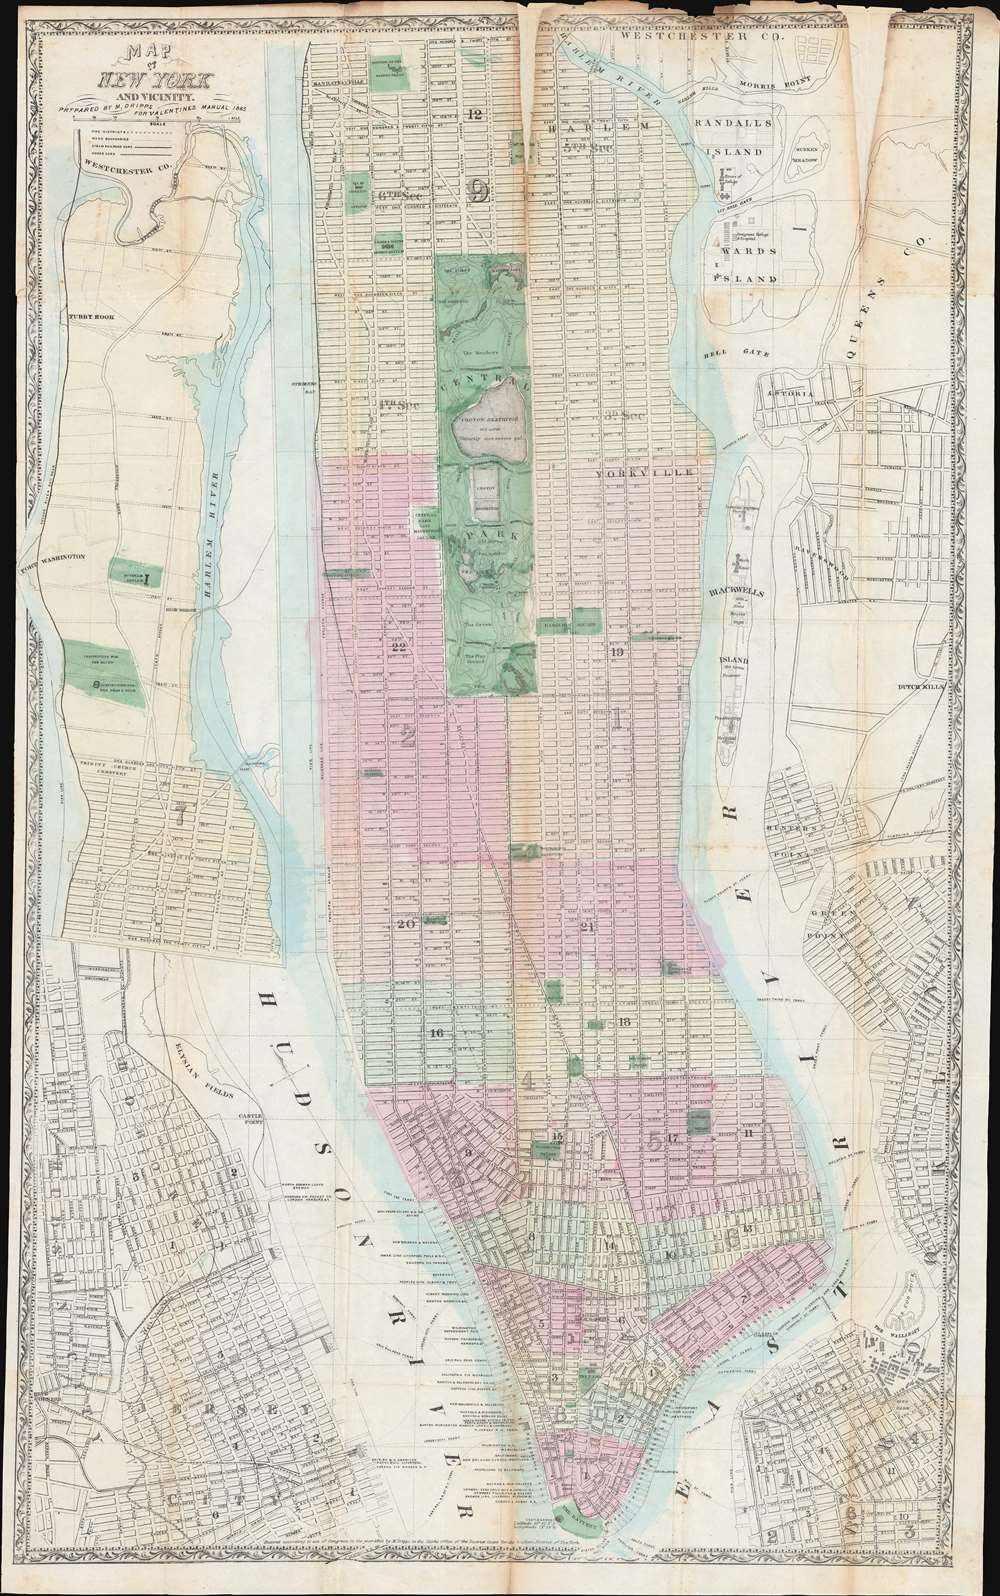 1865 Dripps Map or Plan of New York City and Vicinity